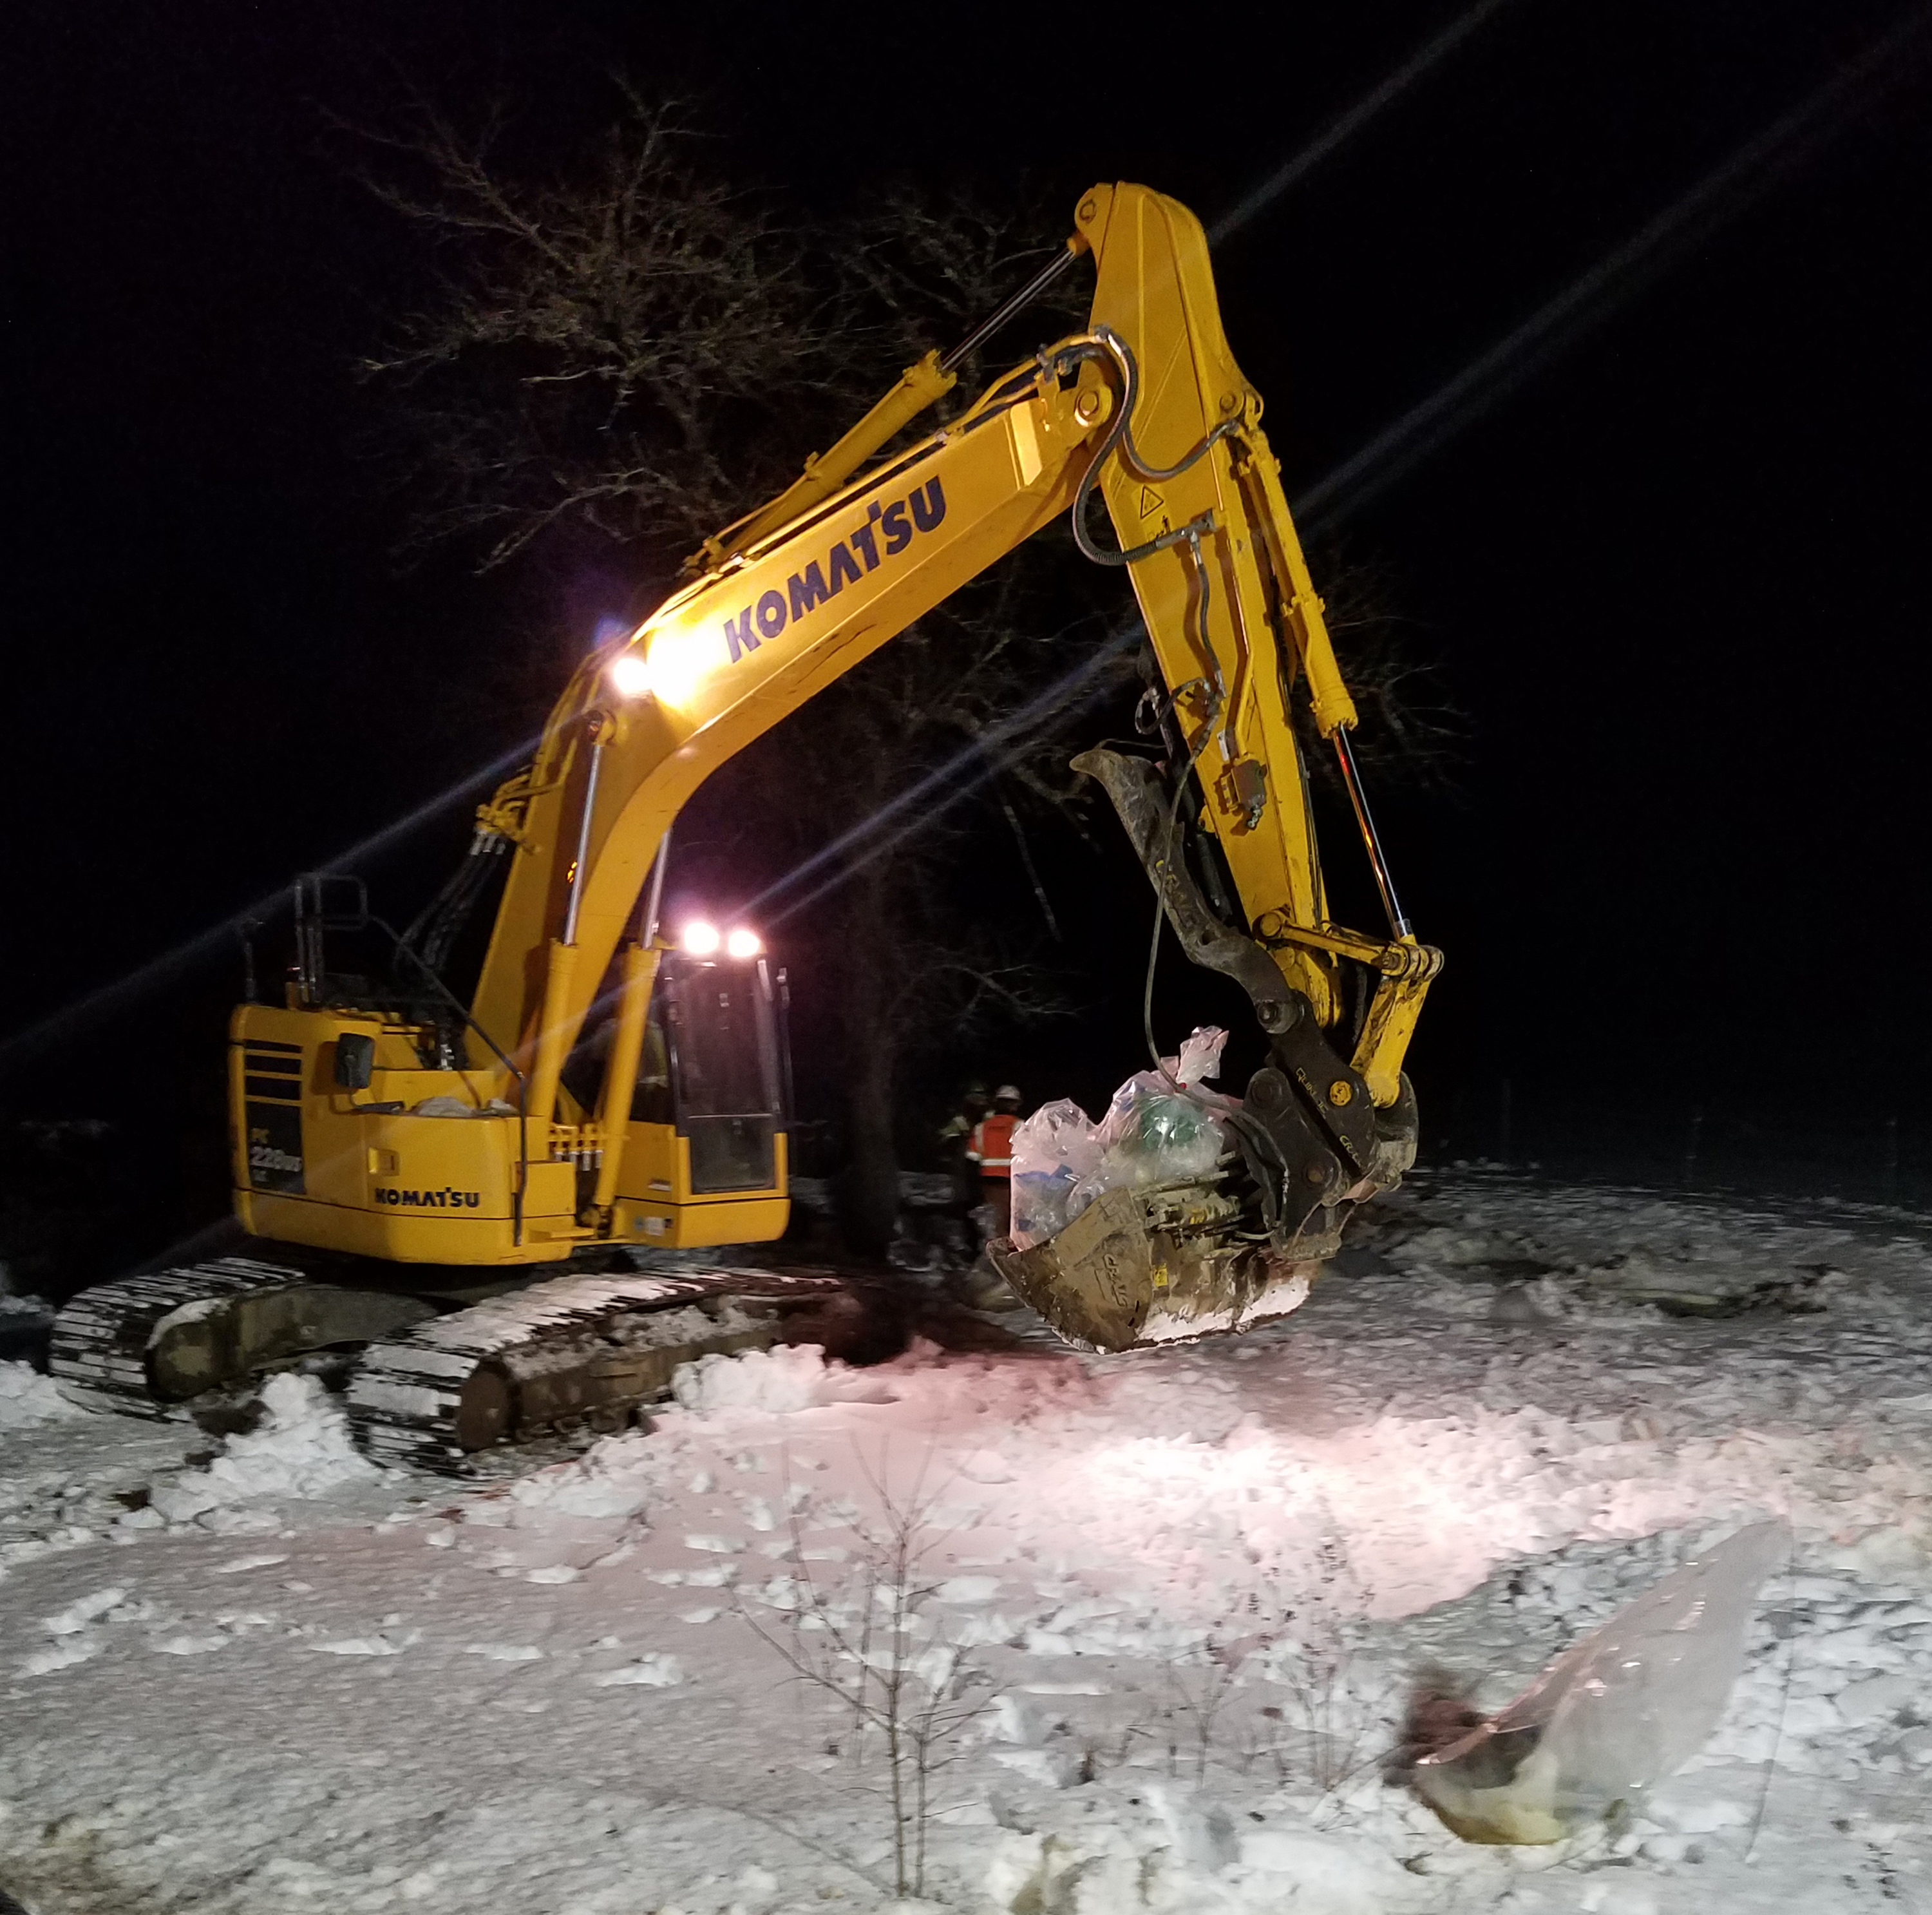 An excavator assists in cleanup operations at the site of a diesel spill on South Clary Road in Jefferson. The Maine Department of Environmental Protection is directing an extensive cleanup and remediation effort, according to Jefferson Fire Chief Walter Morris. (Photo courtesy Walter Morris)